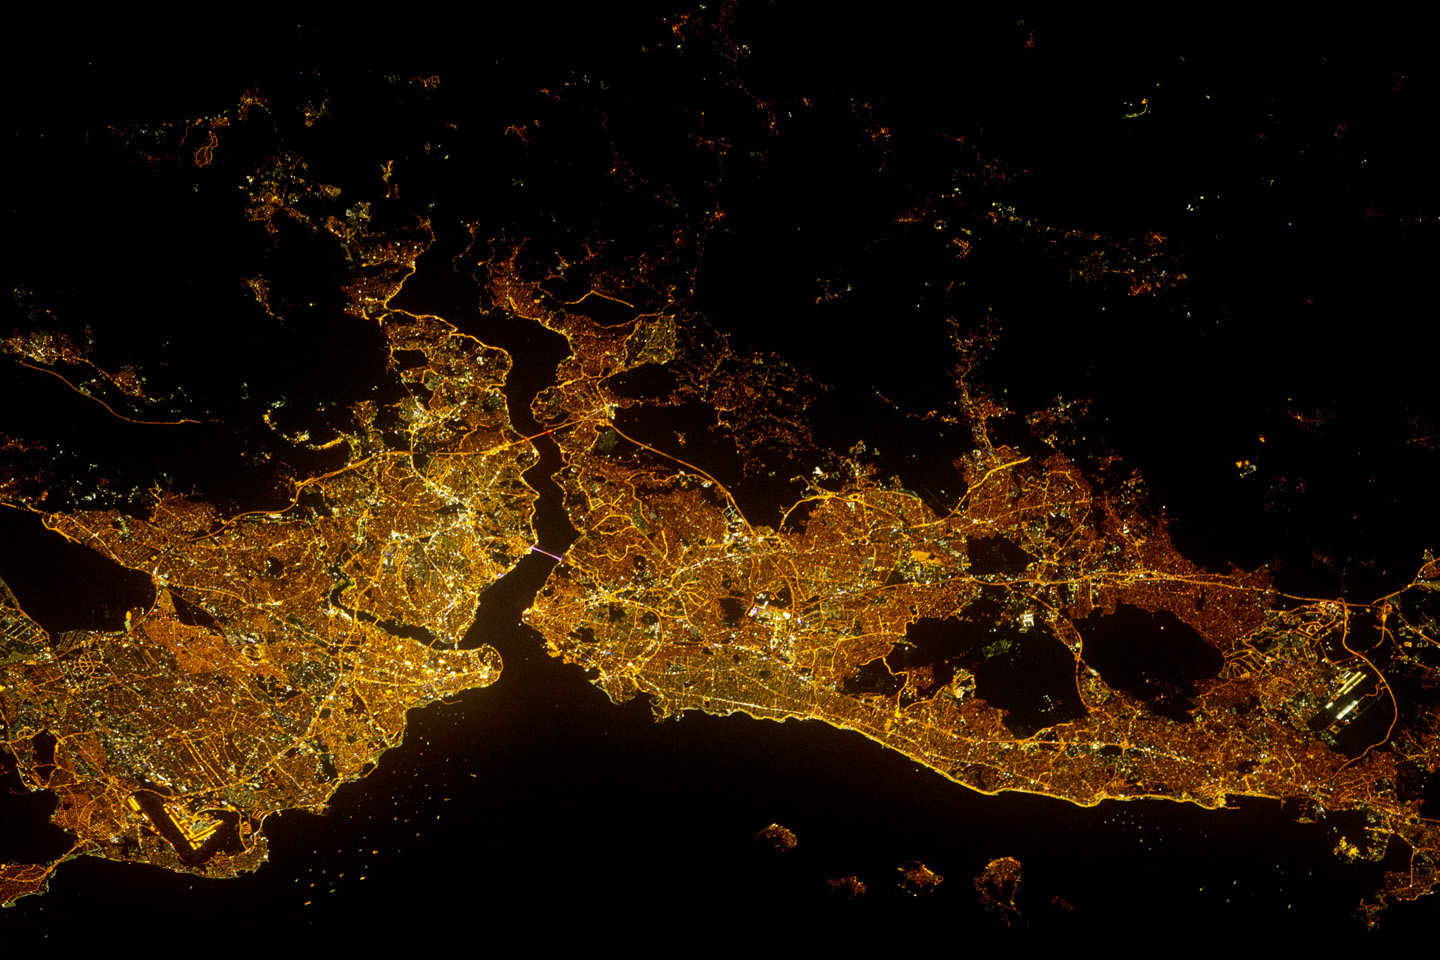 Today's Image of the Day comes thanks to the NASA Earth Observatory and features a look at the city of Istanbul at night.